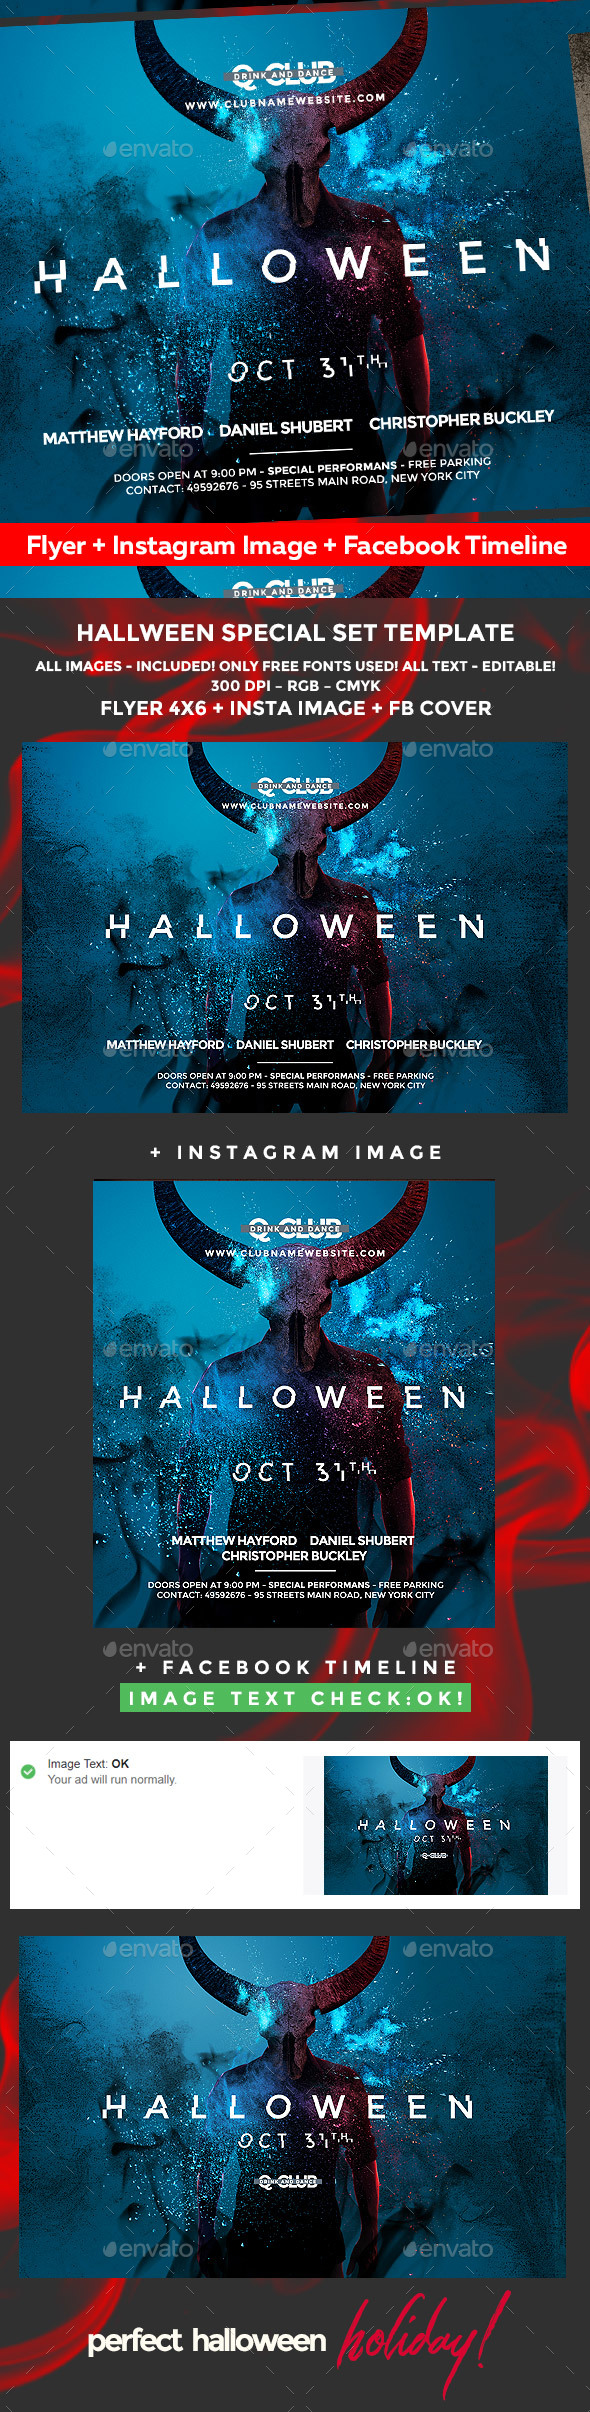 halloween flyer graphics designs u0026 templates from graphicriver